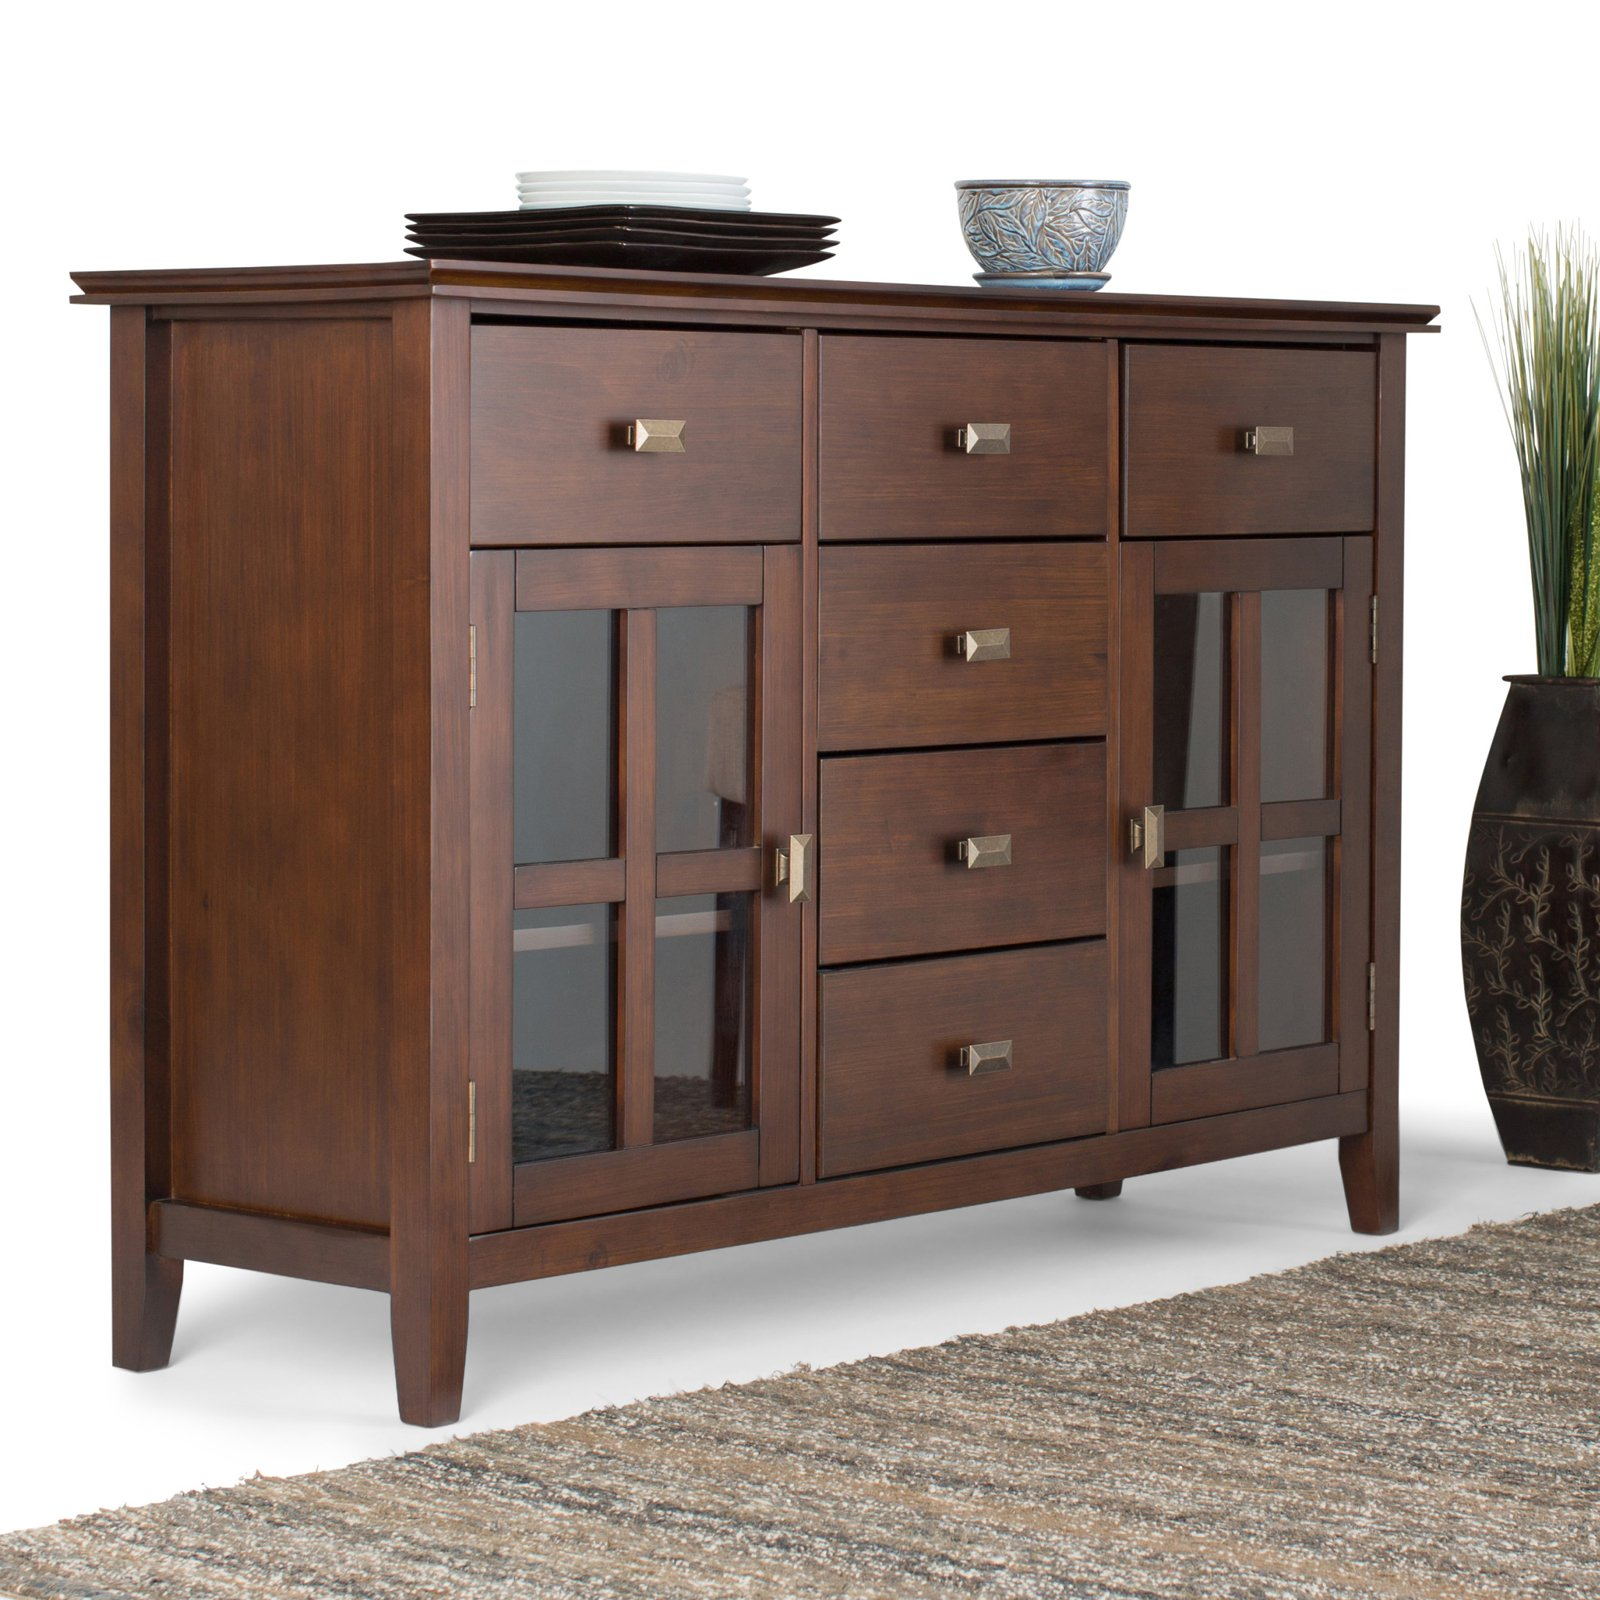 Simpli Home Artisan Sideboard Buffet by CCT Global Sourcing Inc